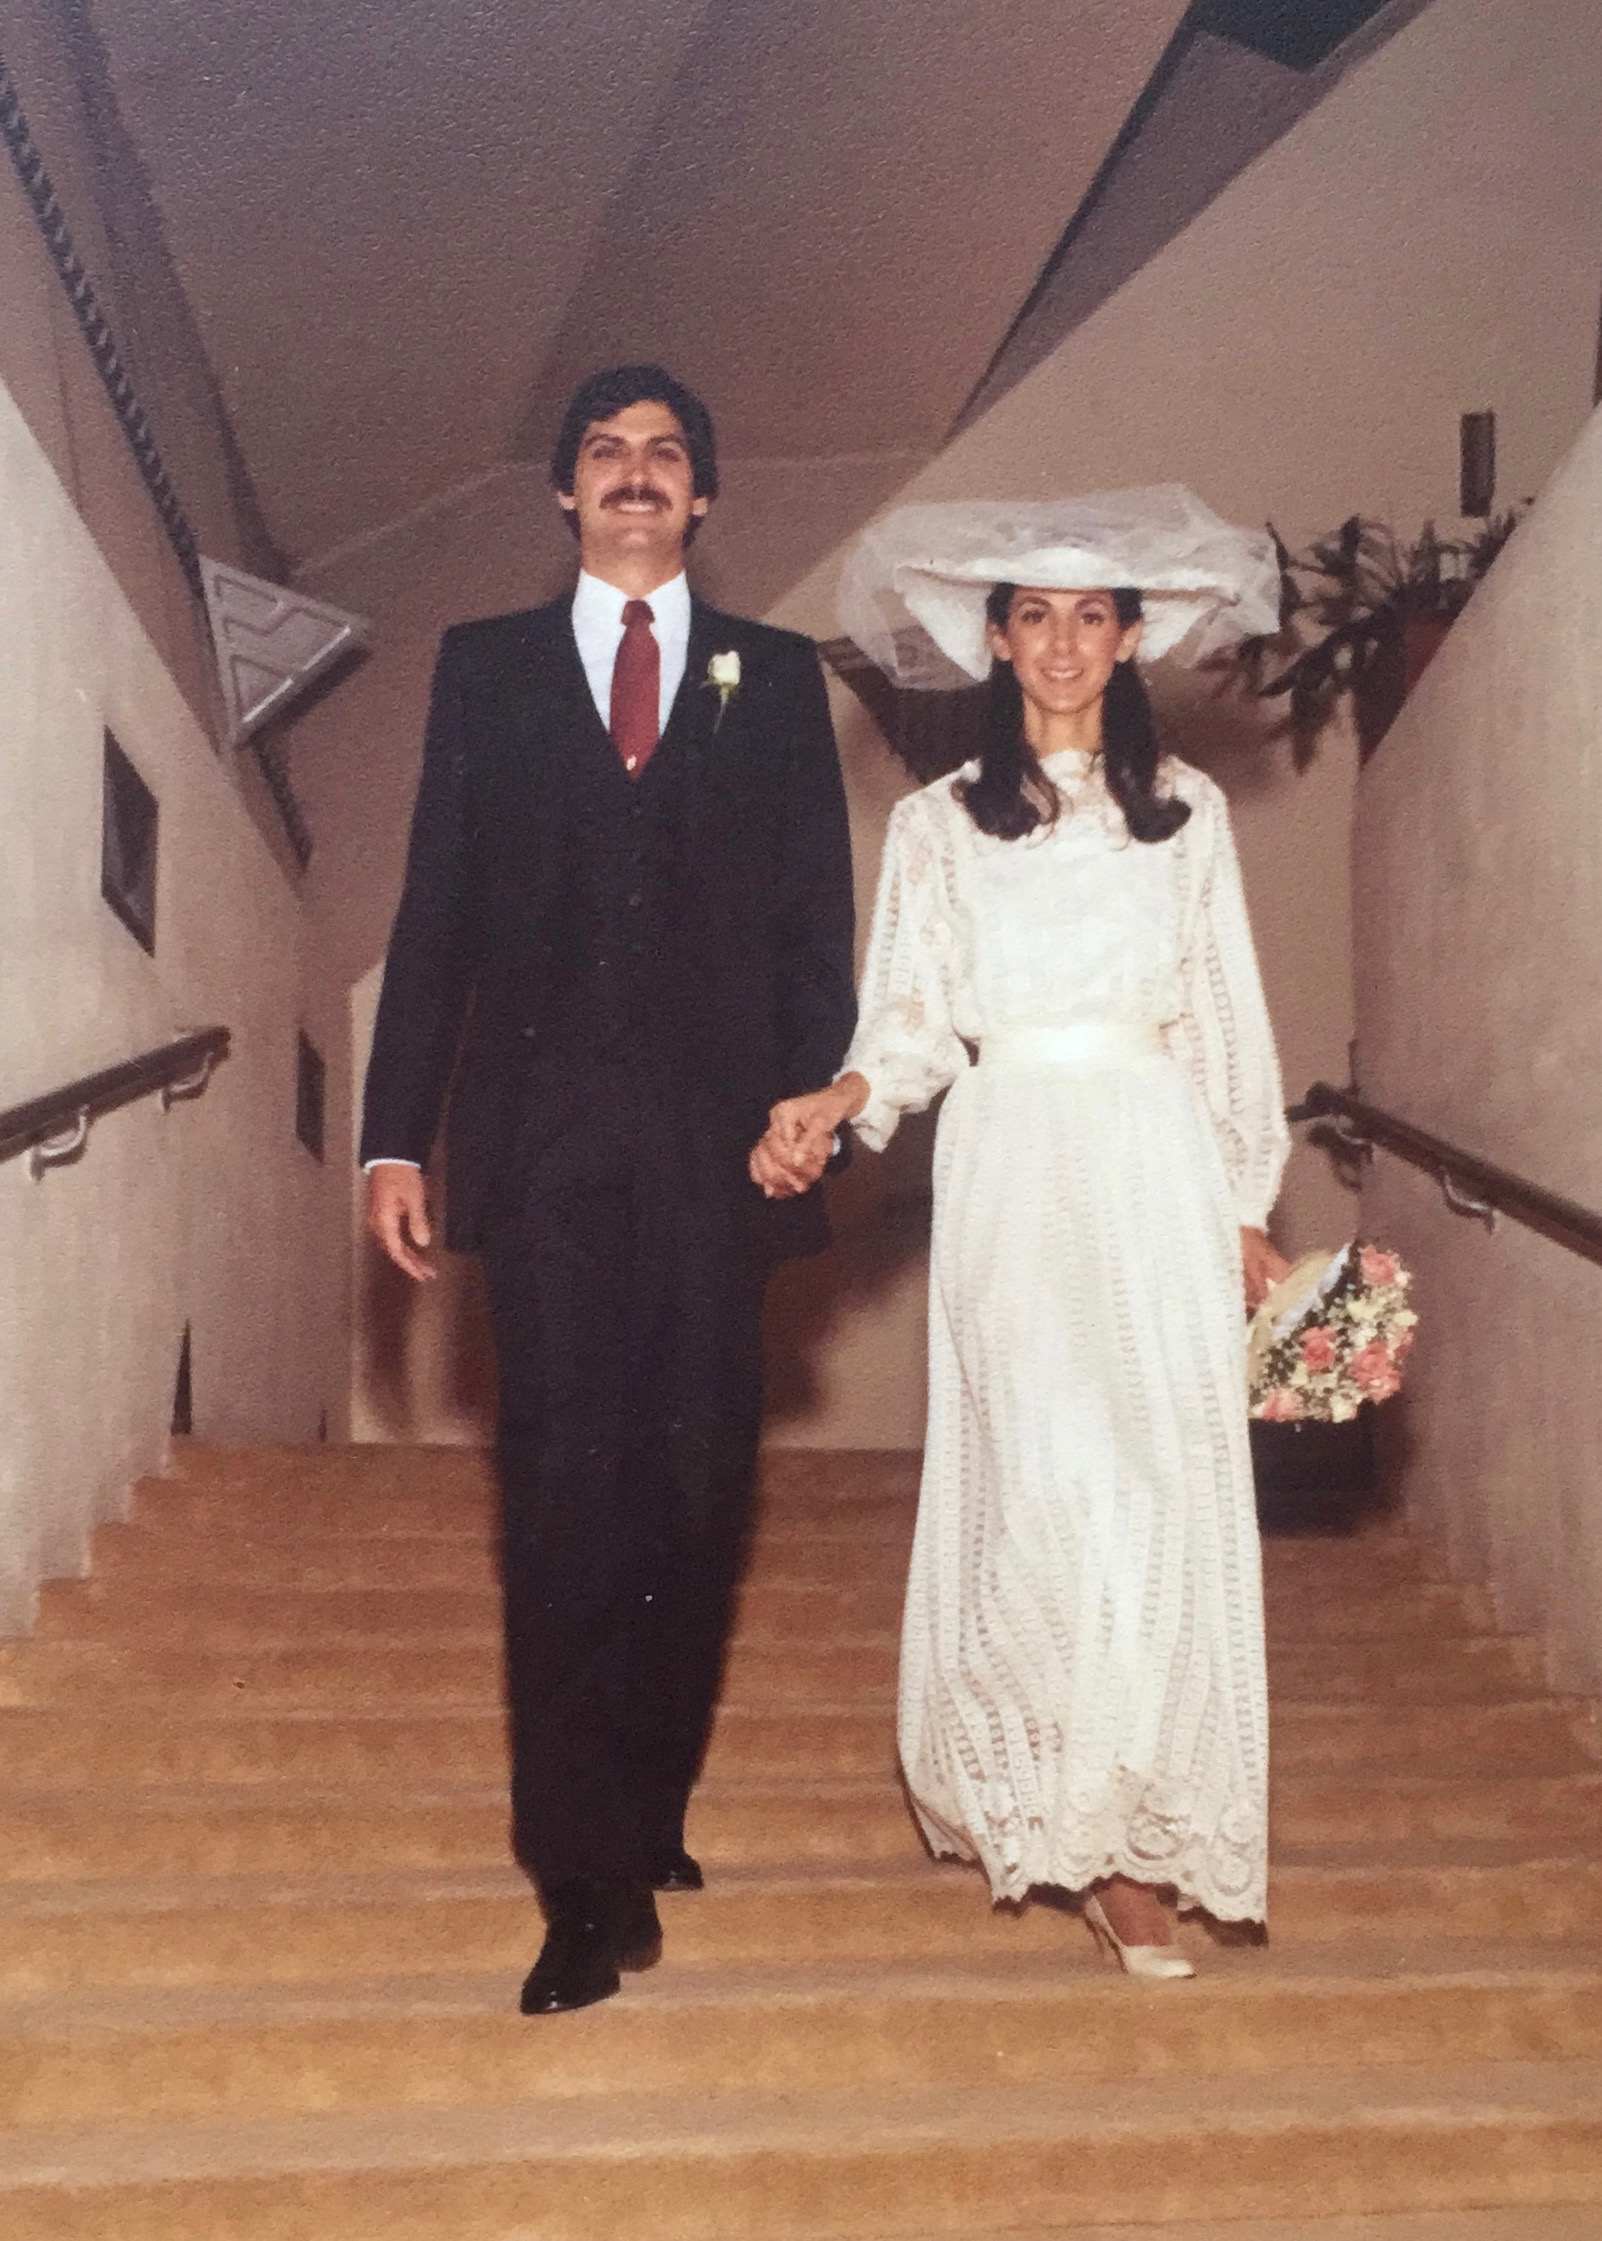 My parents on their wedding day | June 7, 1981